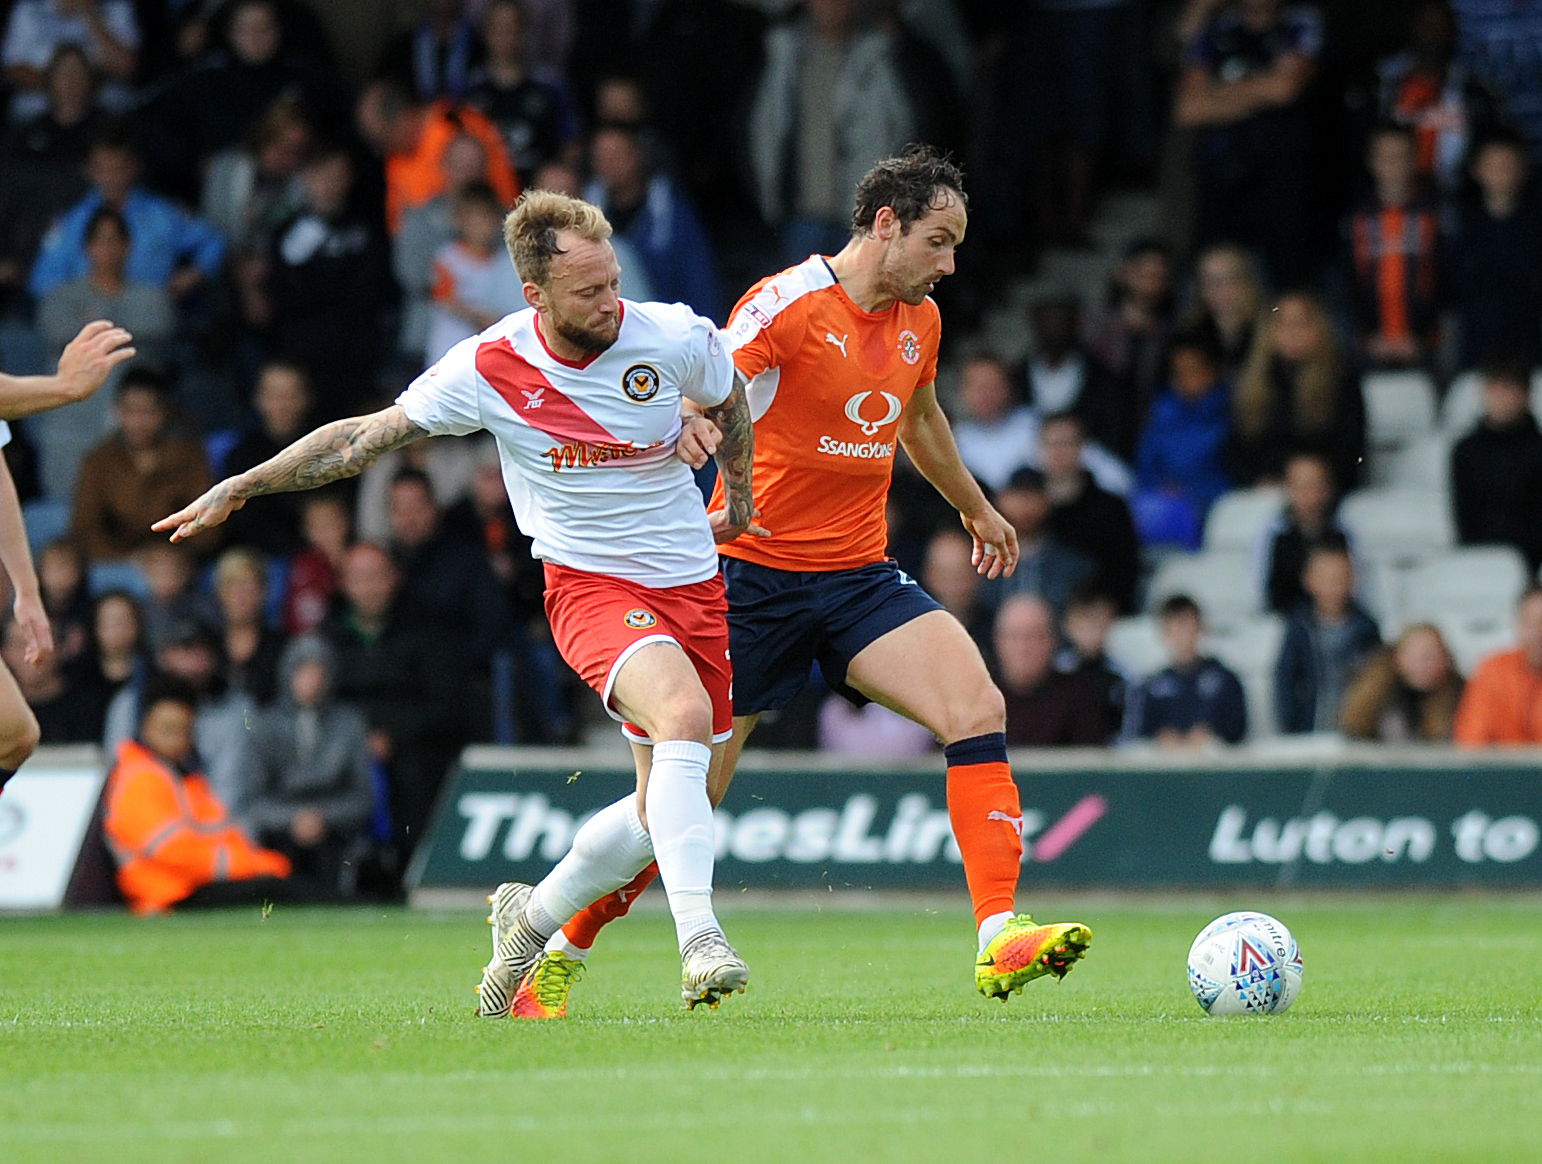 DEFEAT: Sean Rigg in action for Newport County at Luton Town. Pictures: Huw Evans Agency